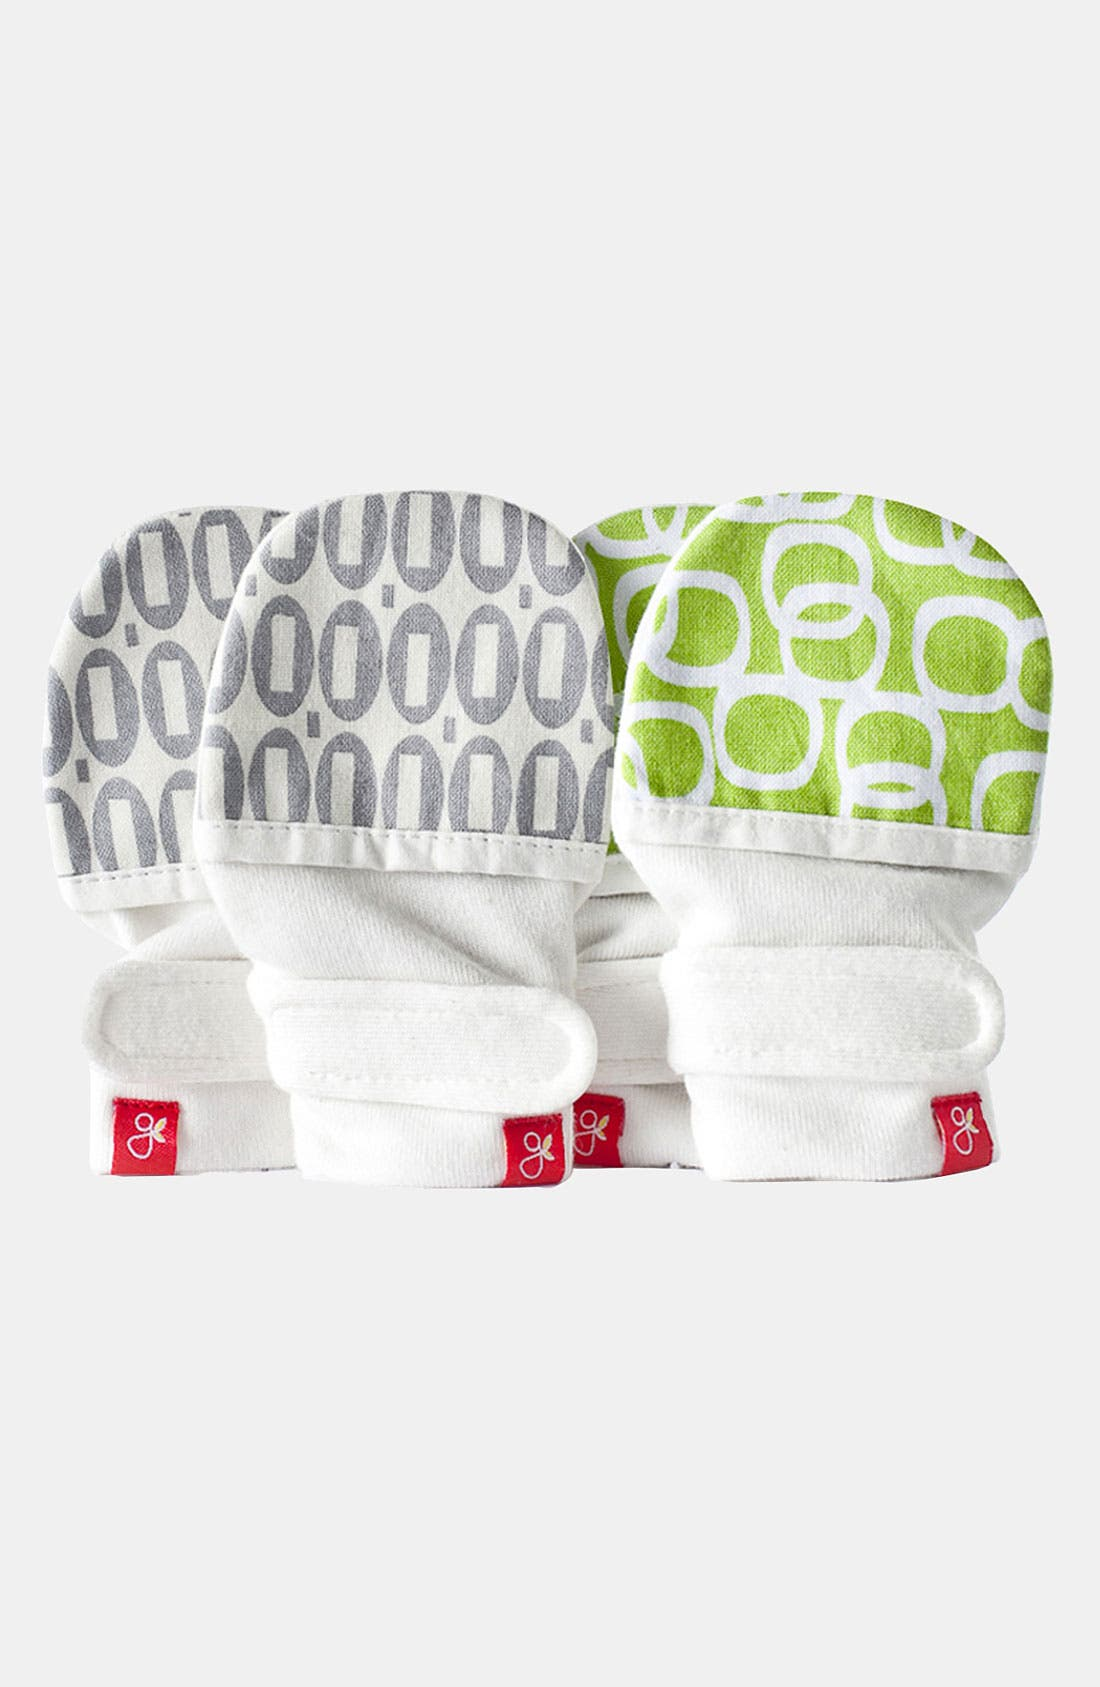 Main Image - Guavamitts Mittens (Set of 2) (Infant)